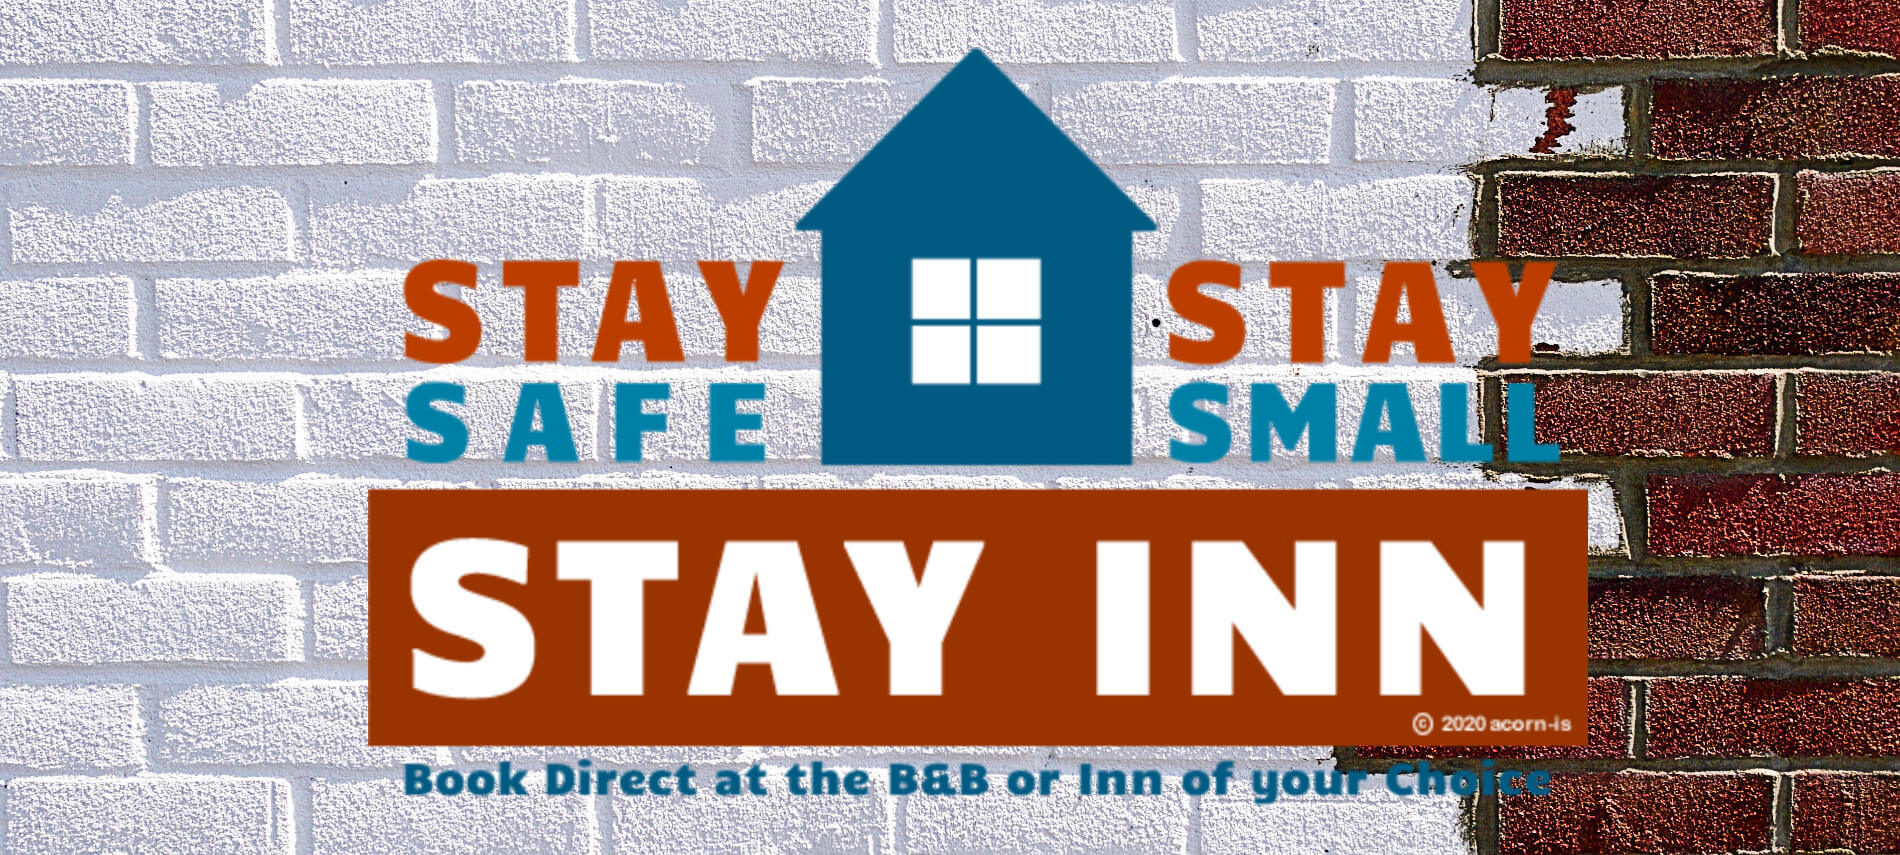 Stay Safe, Stay Small, Stay Inn log on a brick background